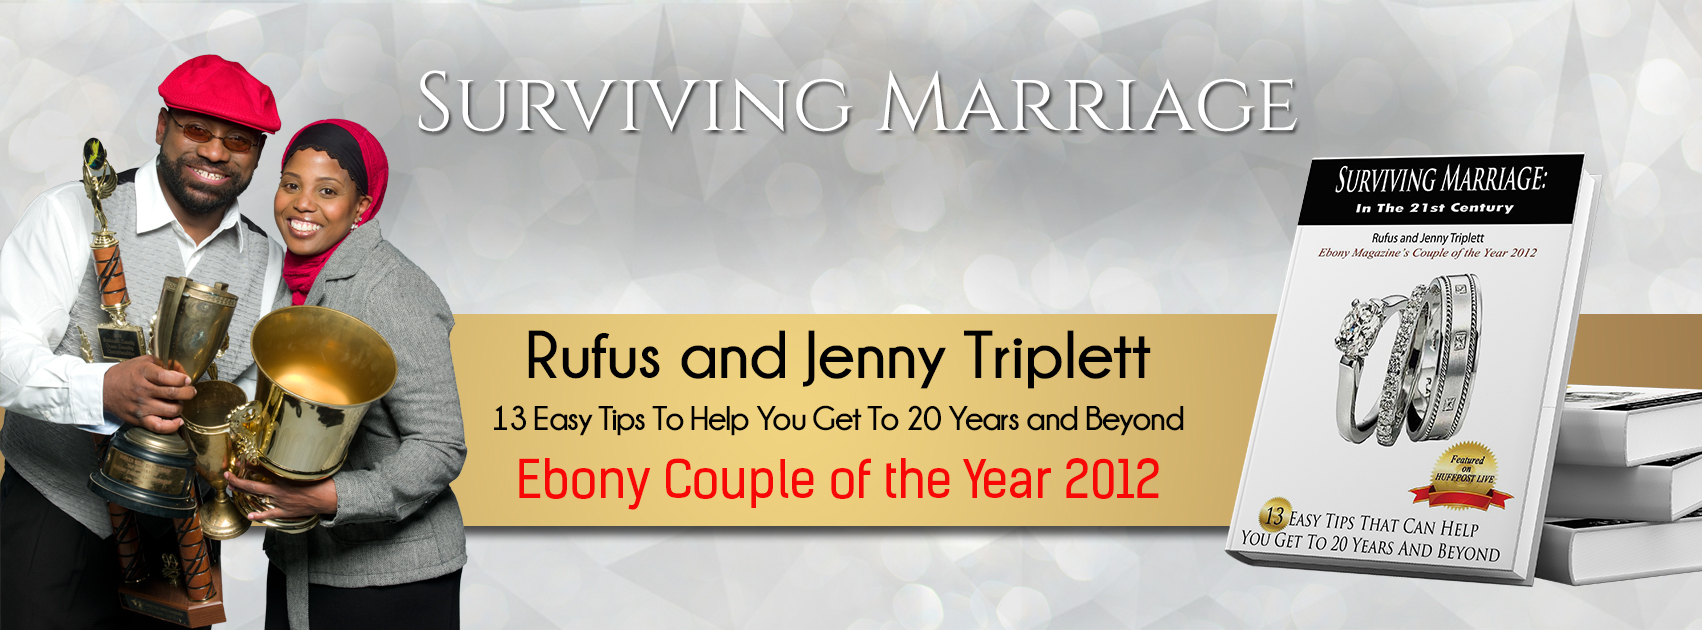 Surviving Marriage, Jenny Triplett, Rufus Triplett, Ebony Magazine Couple of the Year